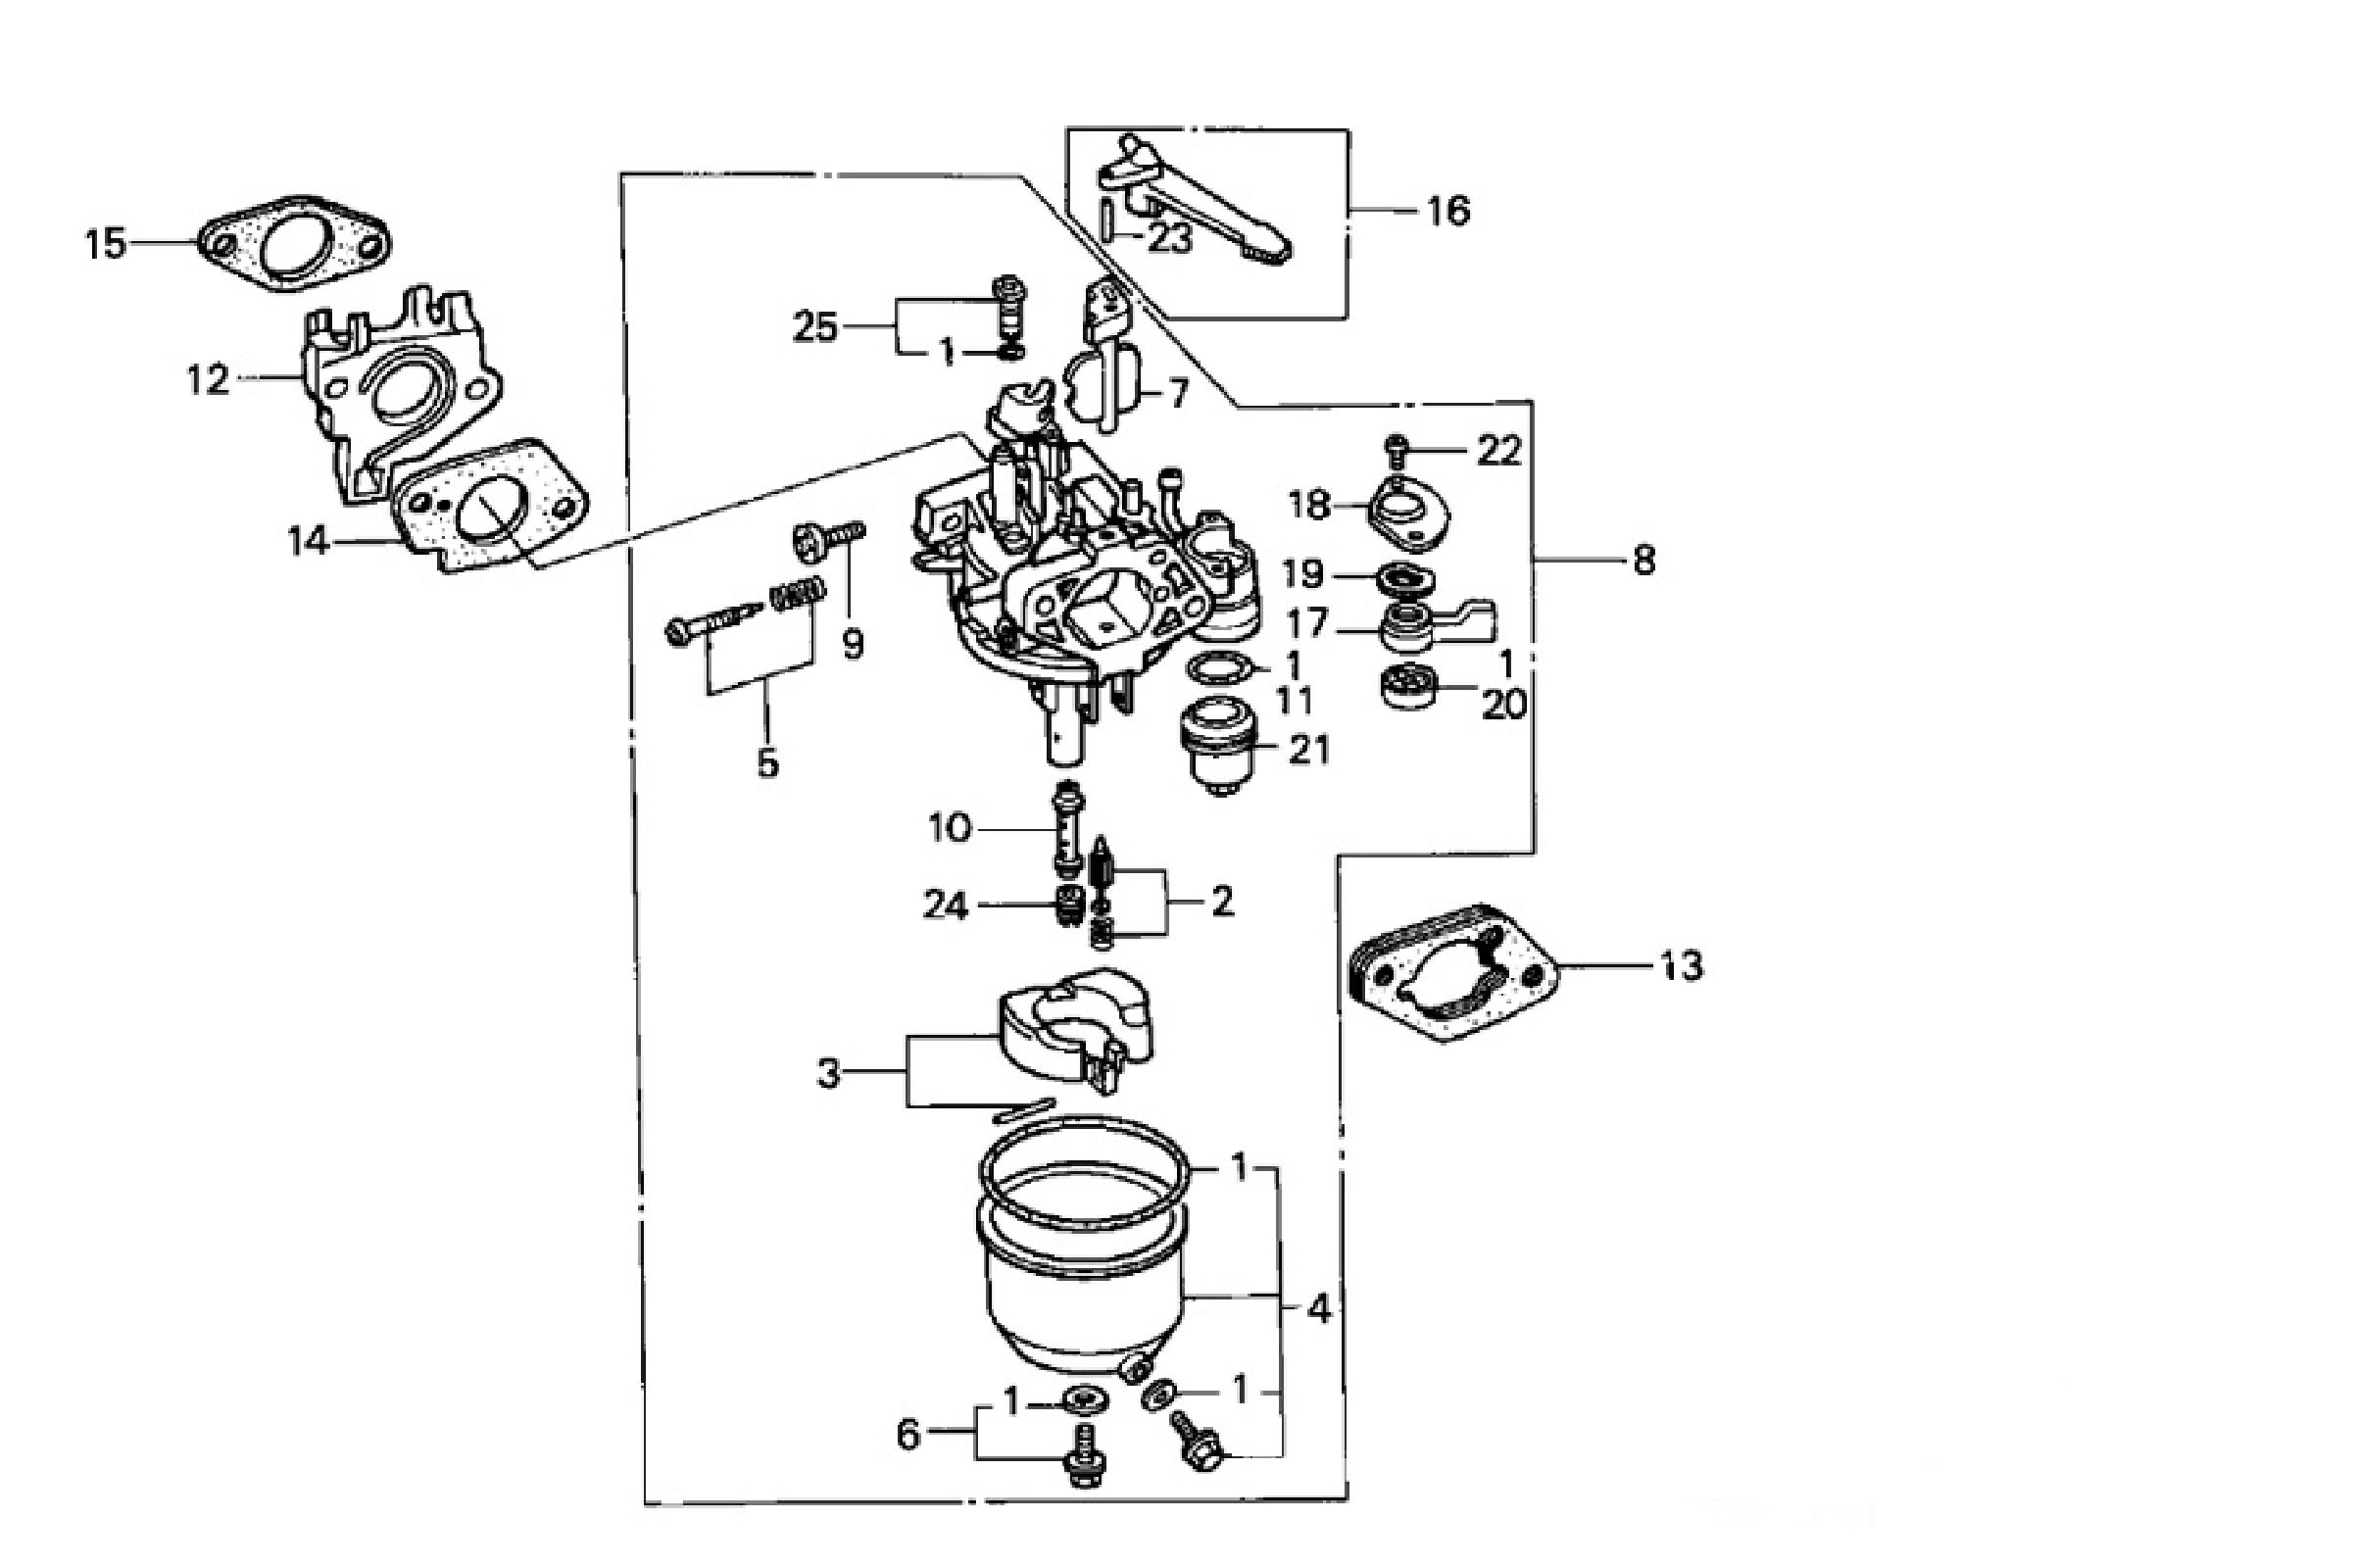 Htb Iwoujxxxxxxnapxxq Xxfxxxp likewise Carb additionally Diagram as well Hqdefault also Attachment. on honda gx160 carburetor diagram